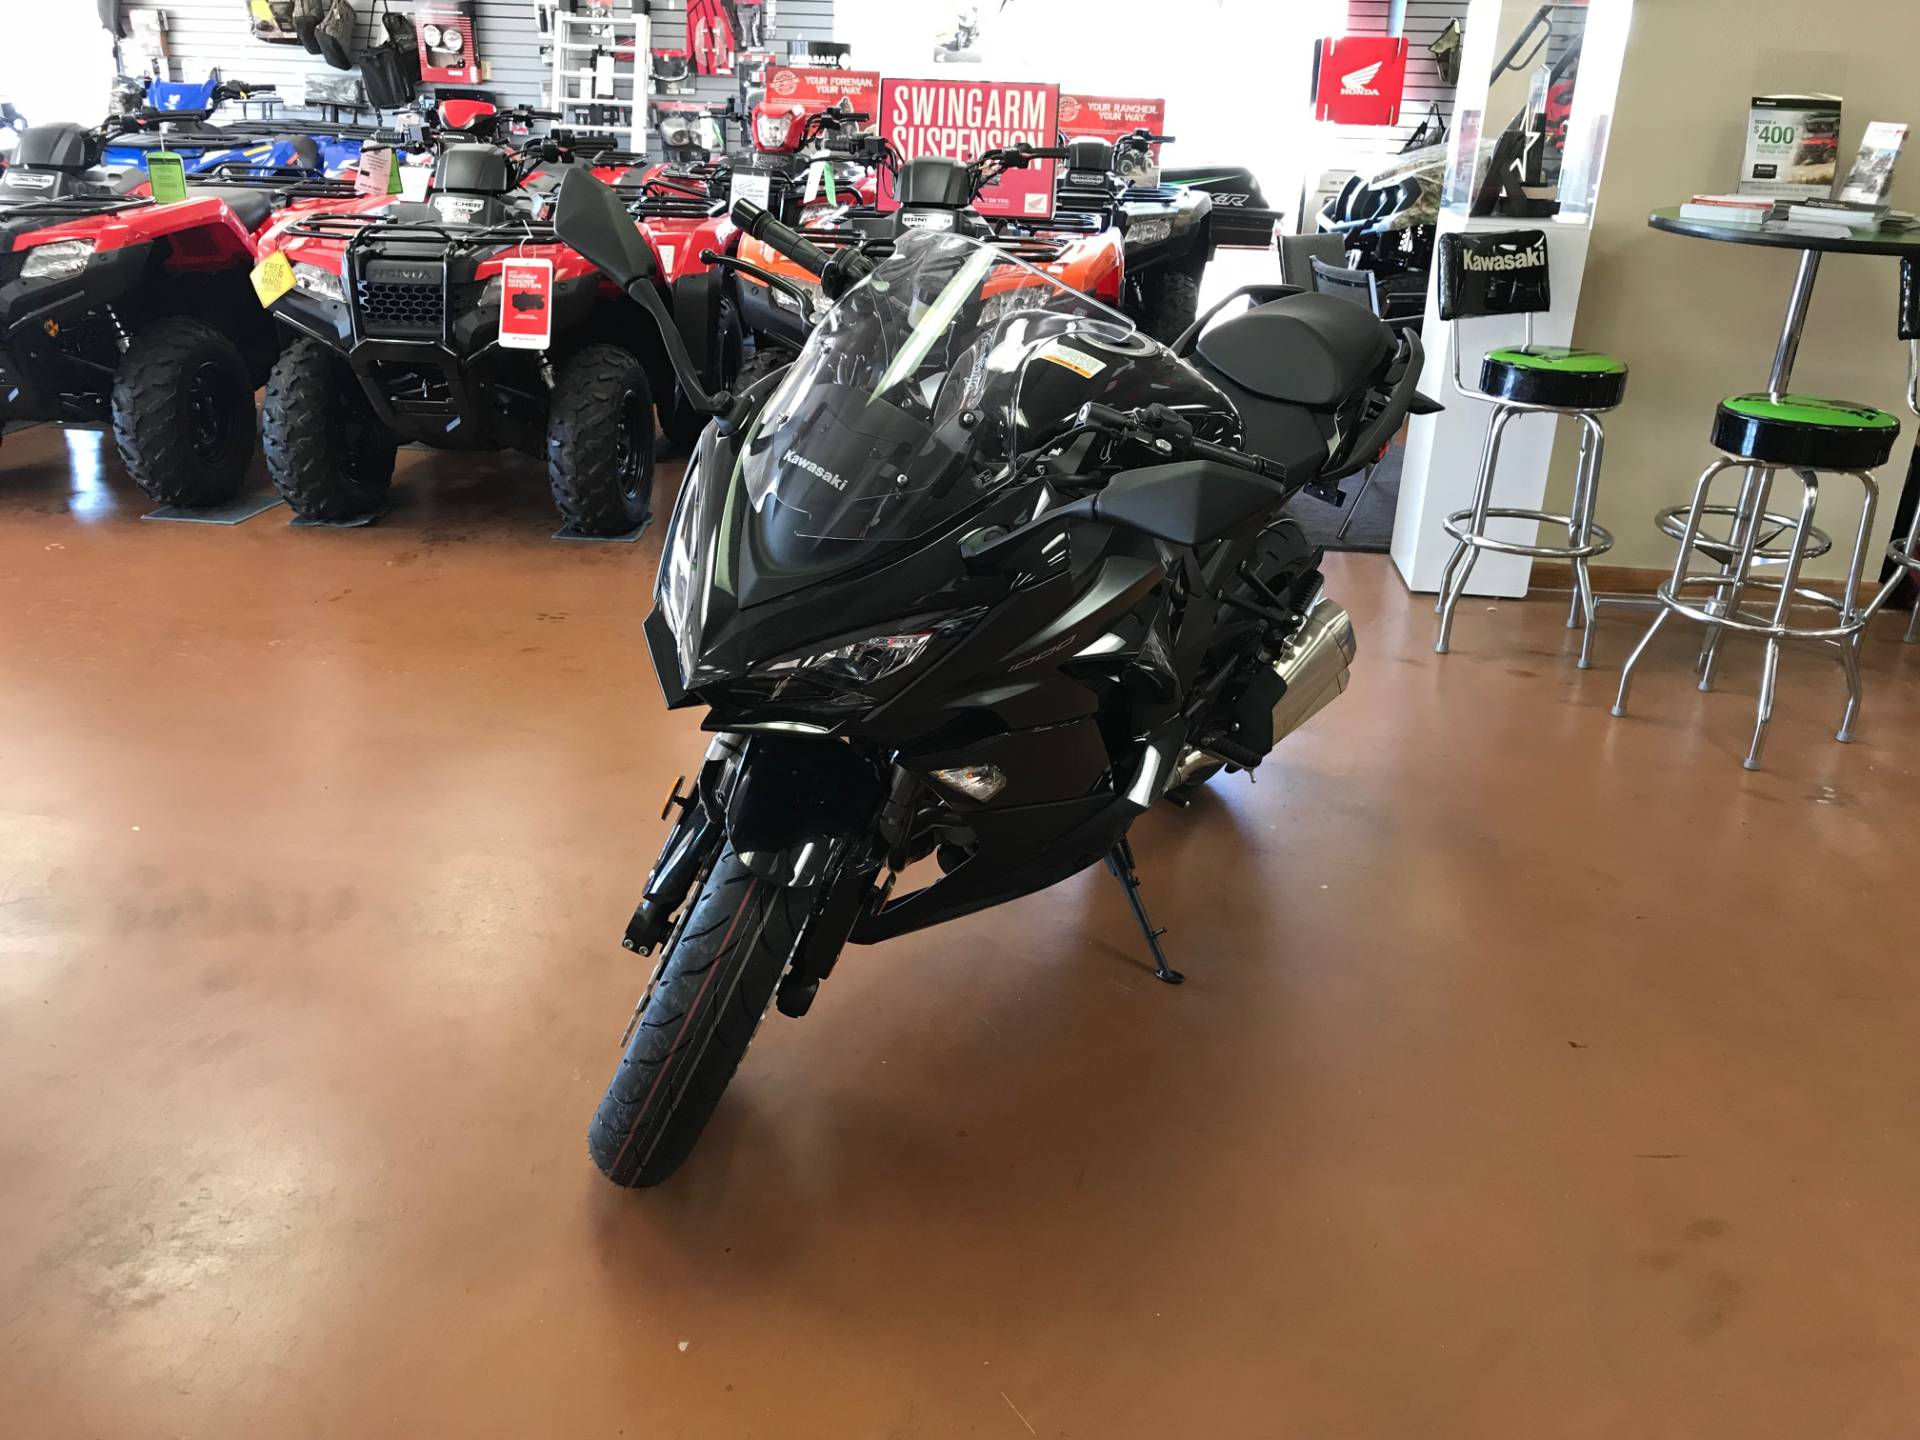 2019 Kawasaki NINJA 1000 ABS in Arlington, Texas - Photo 2